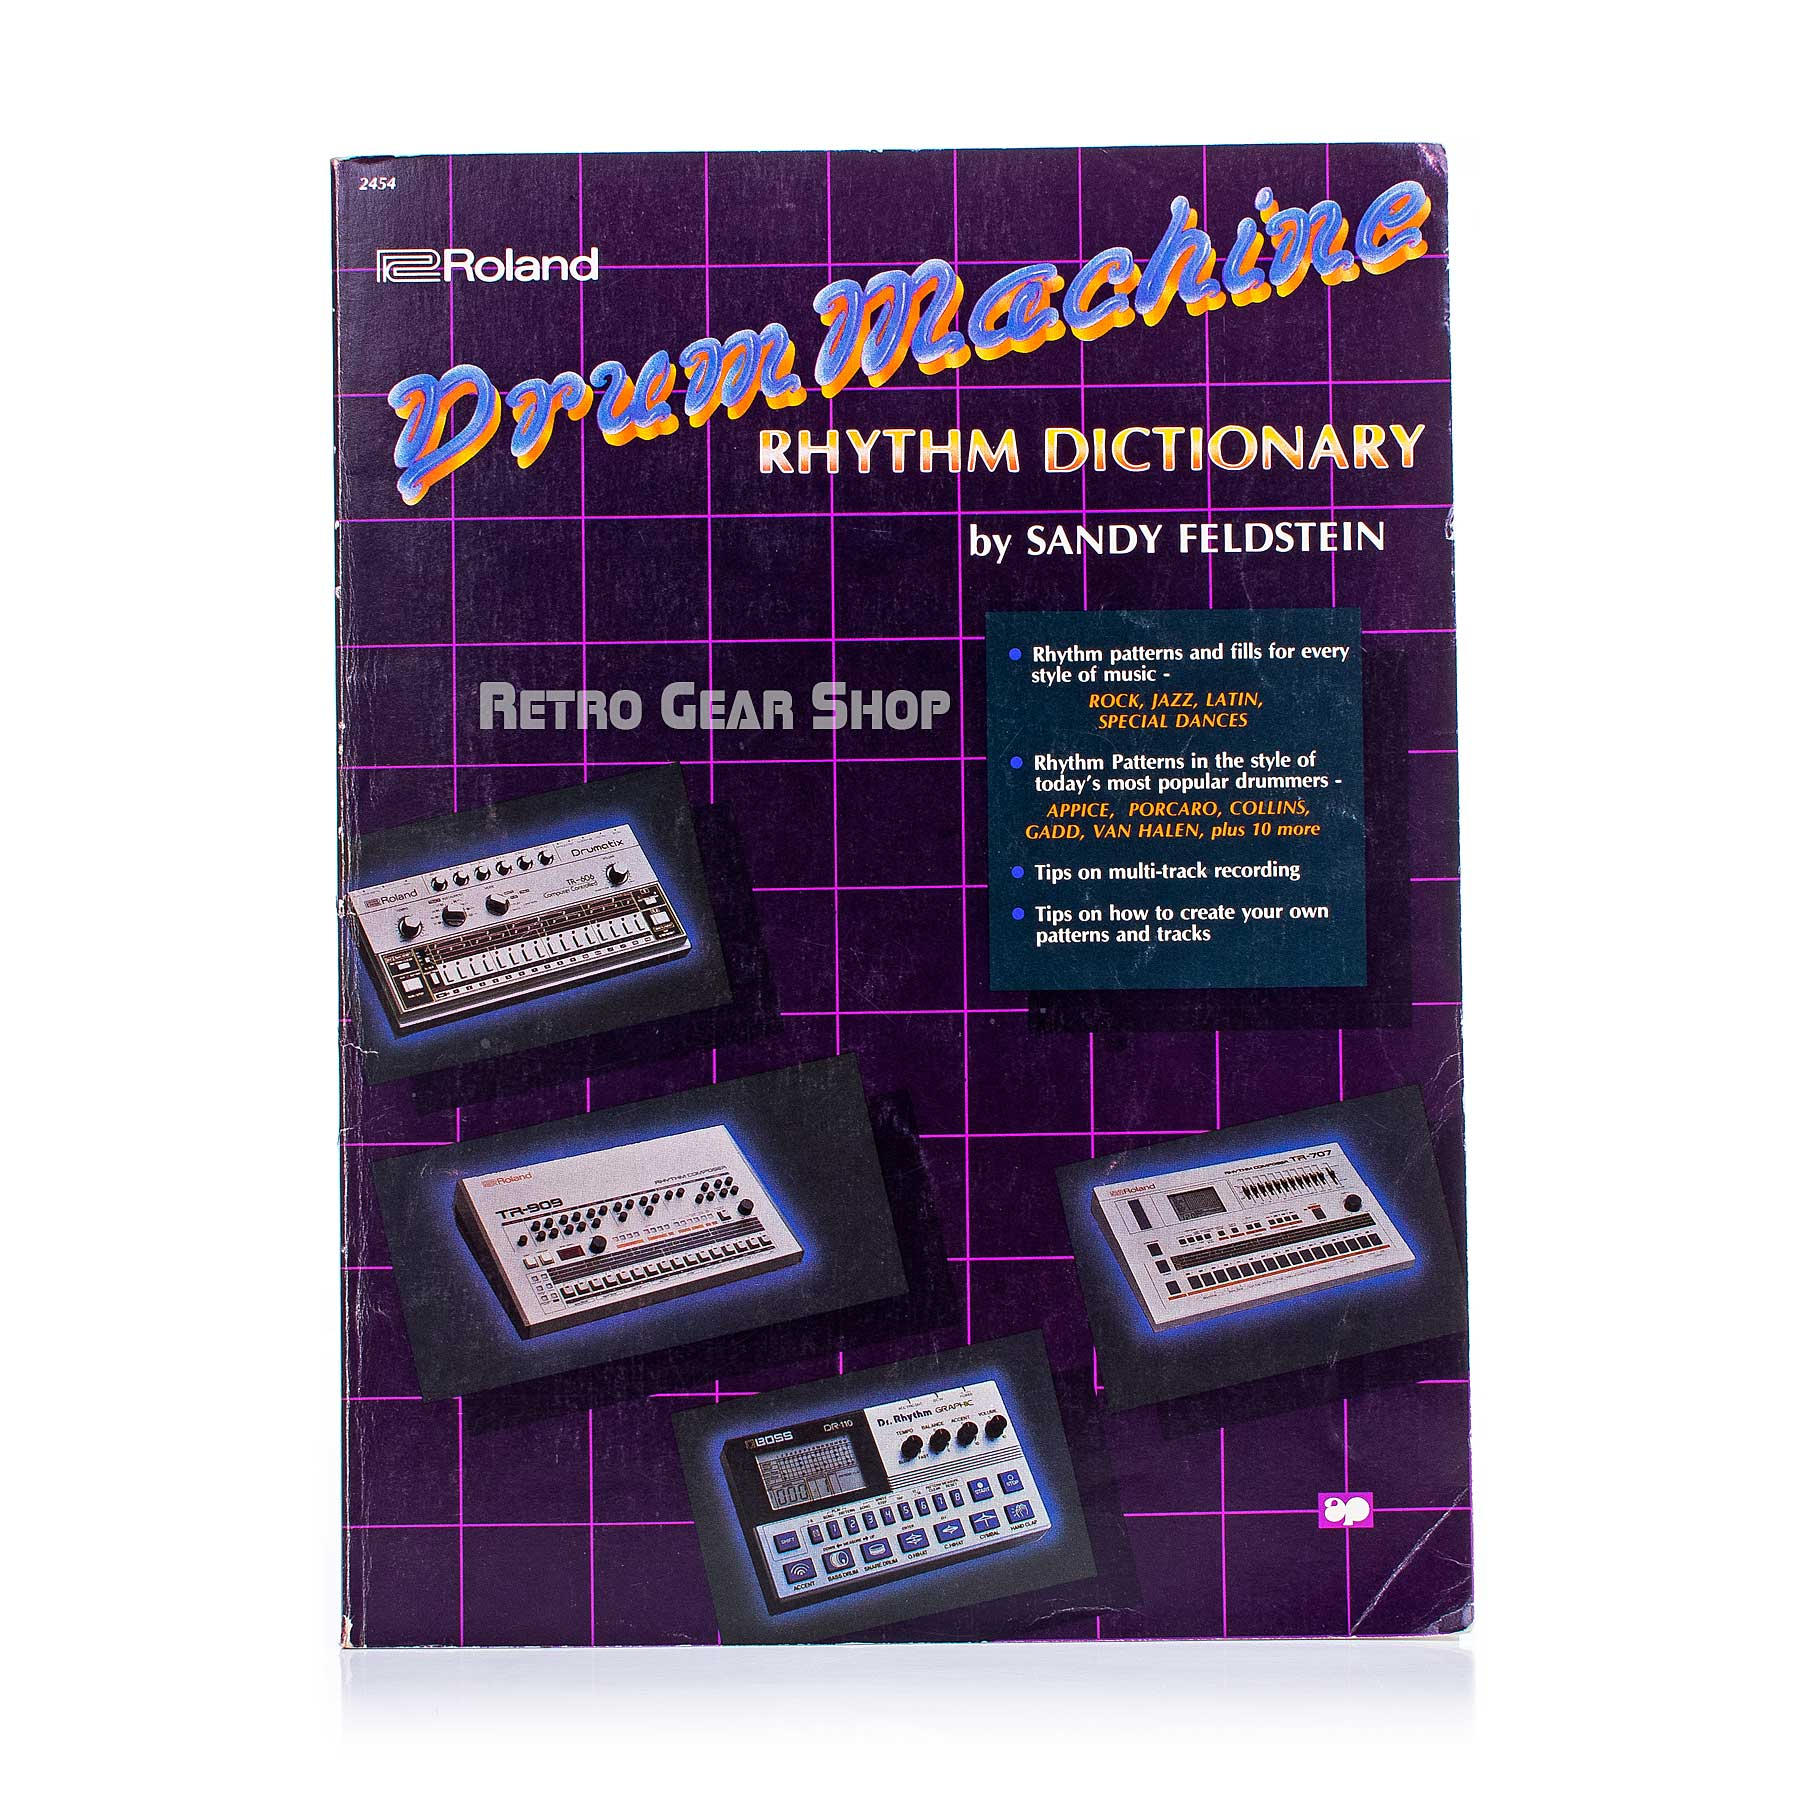 Roland Drum Machine Rhythm Dictionary Book by Sandy Feldstein